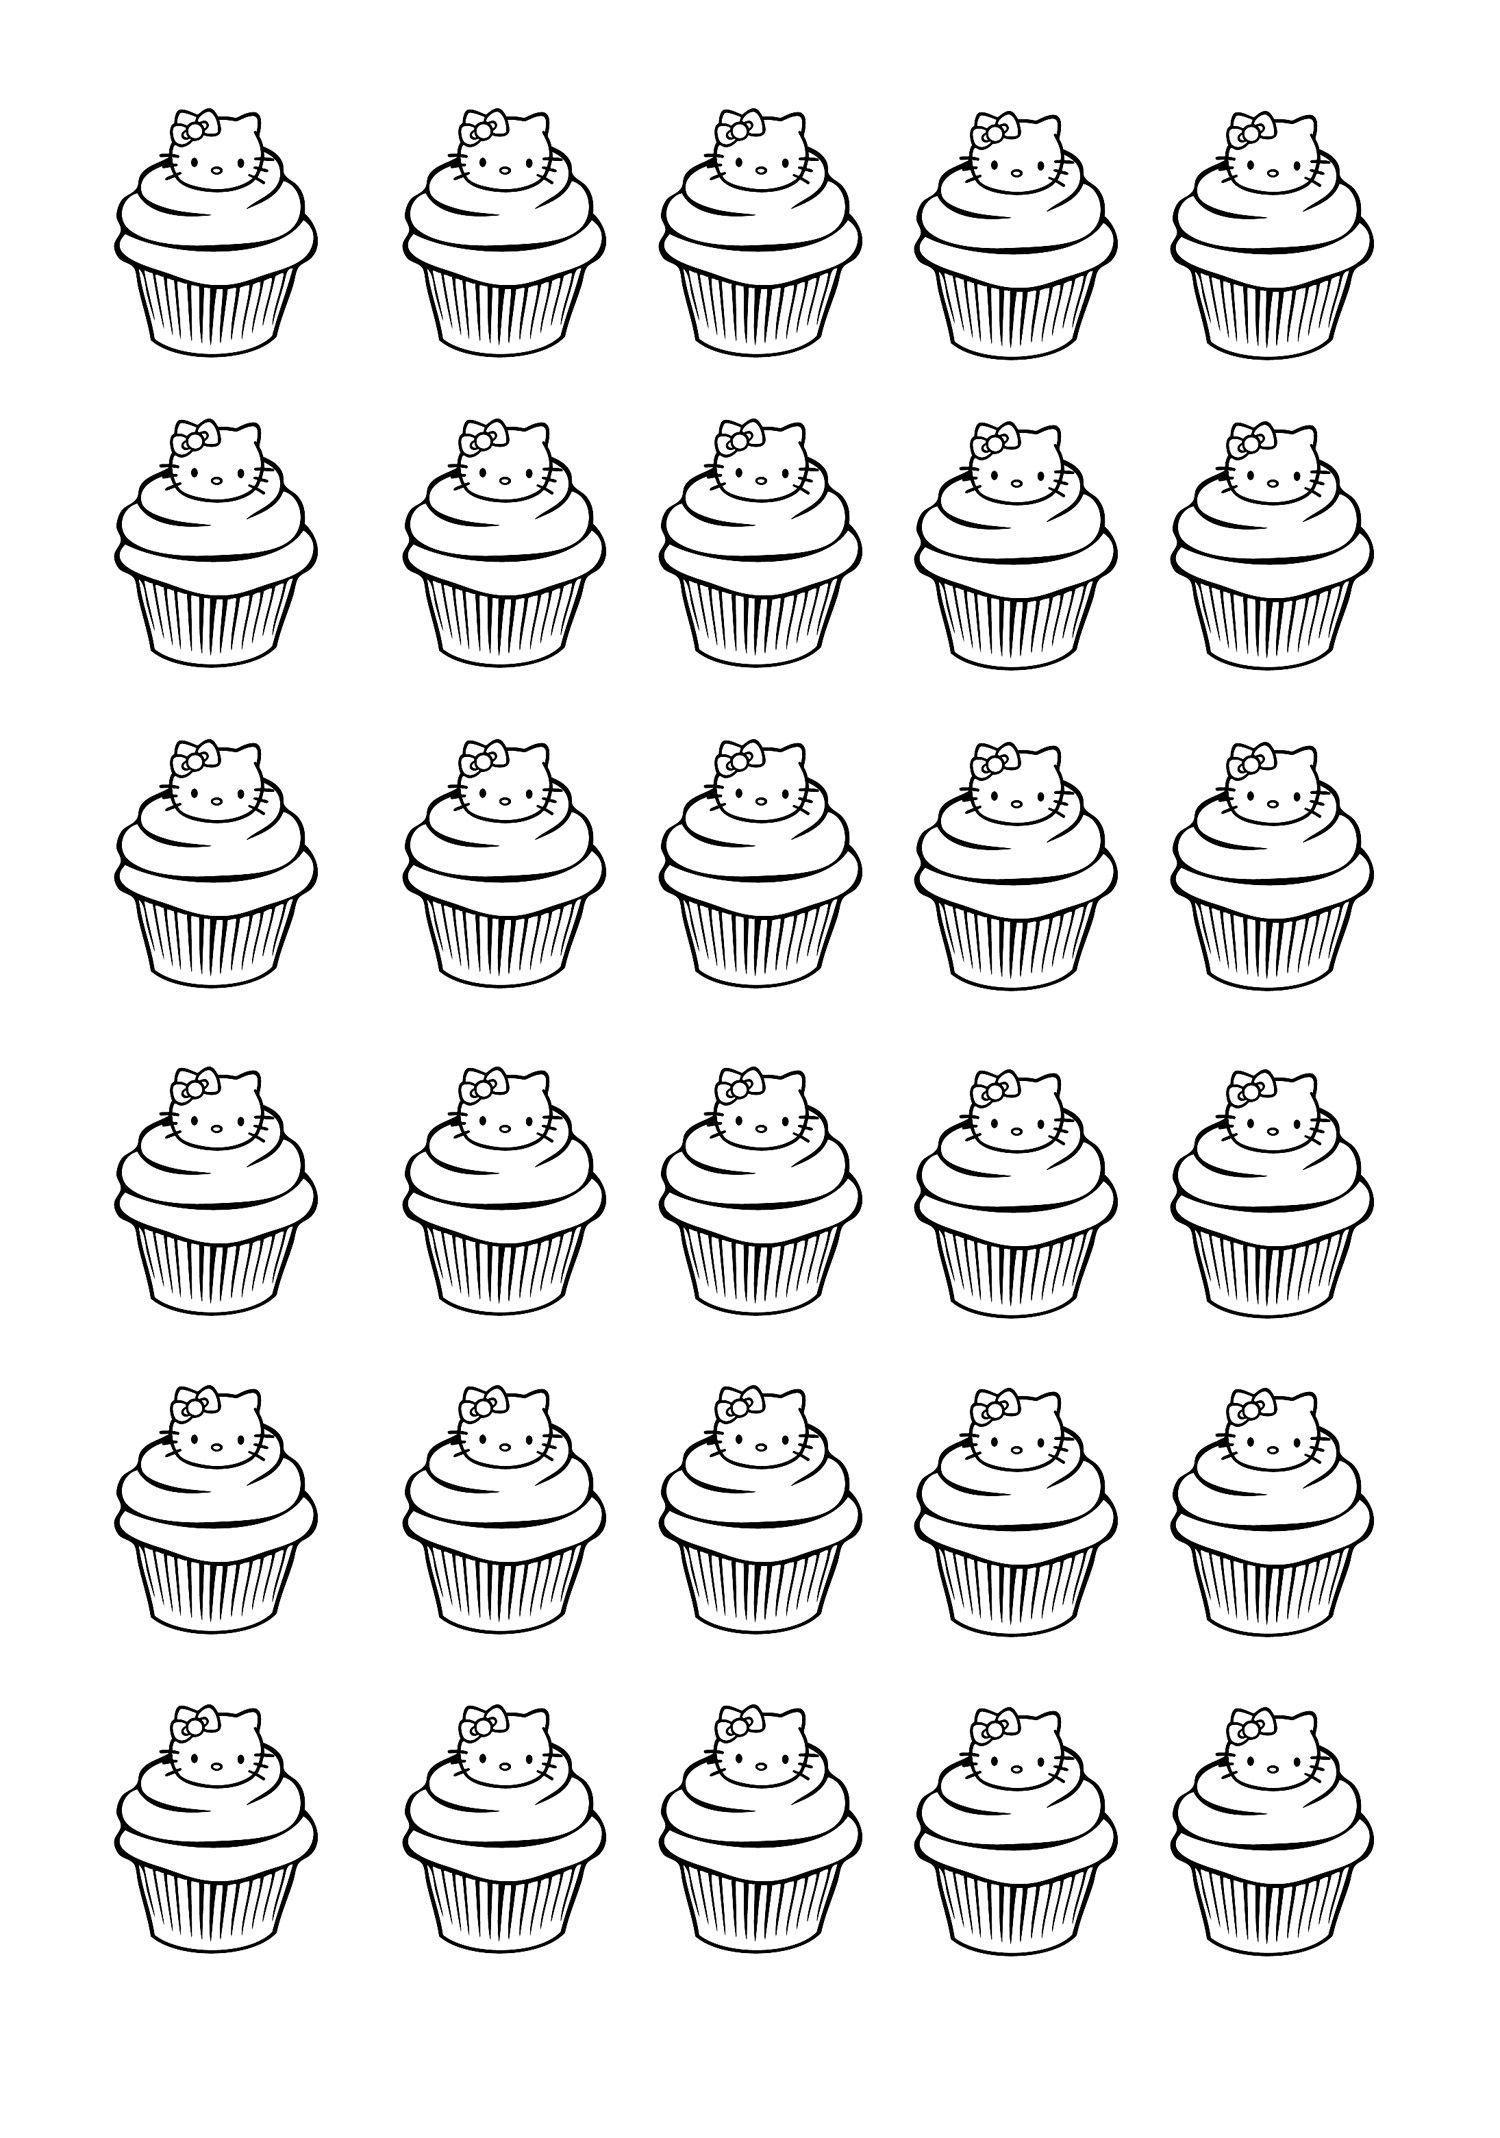 cup cakes coloring pages for adults coloringcupcakes